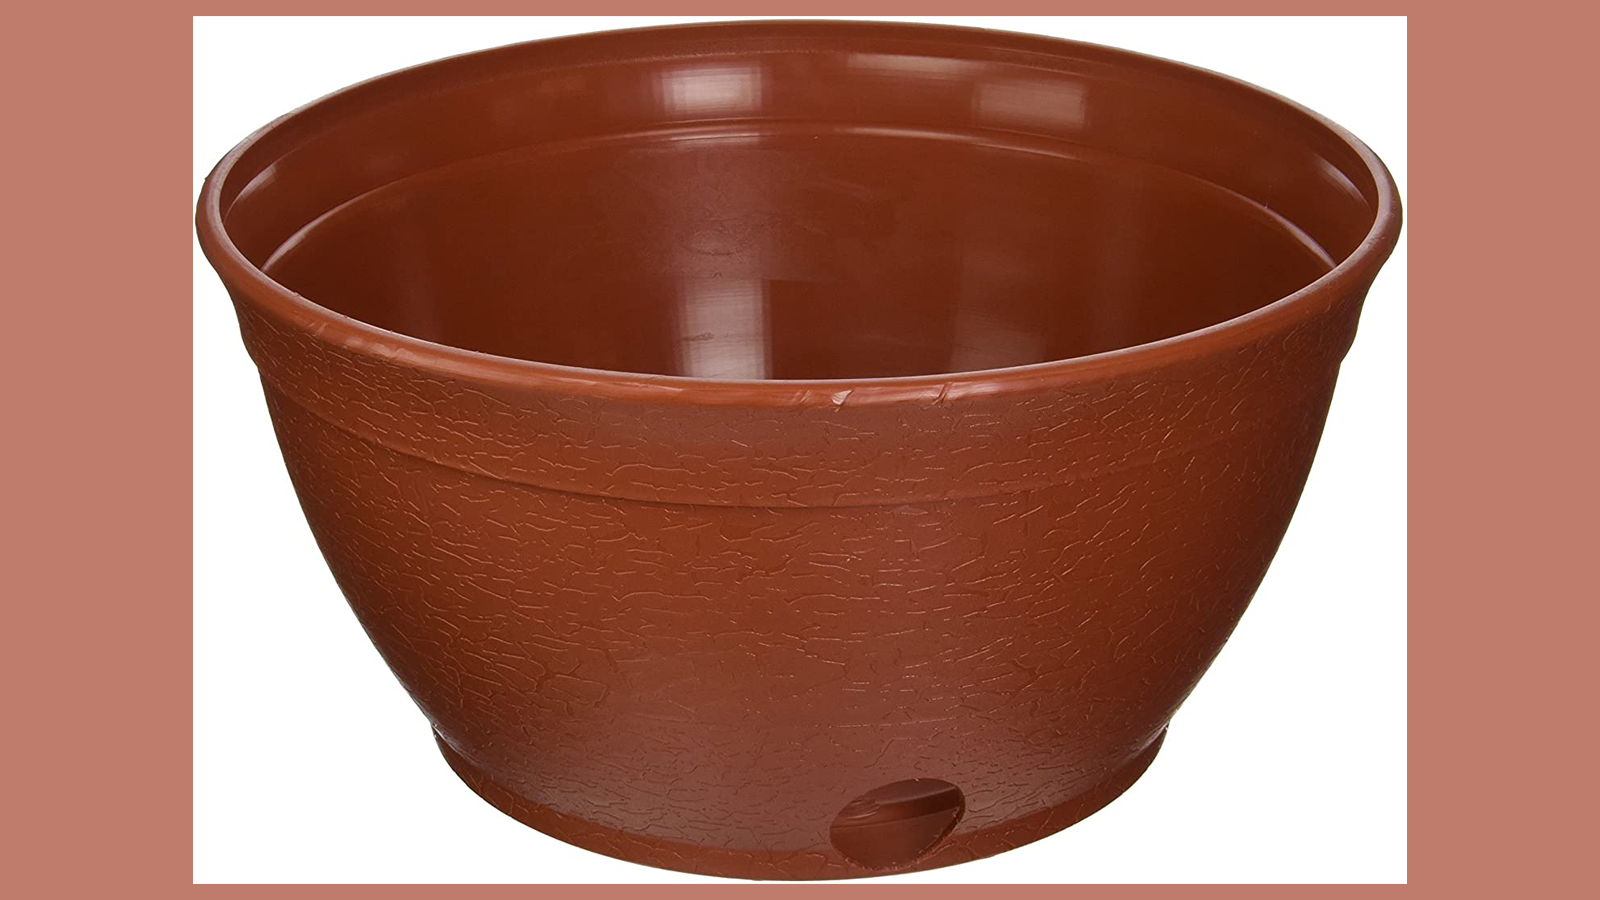 Hide Your Garden Hose (But Still Keep it Accessible) with This Storage Pot